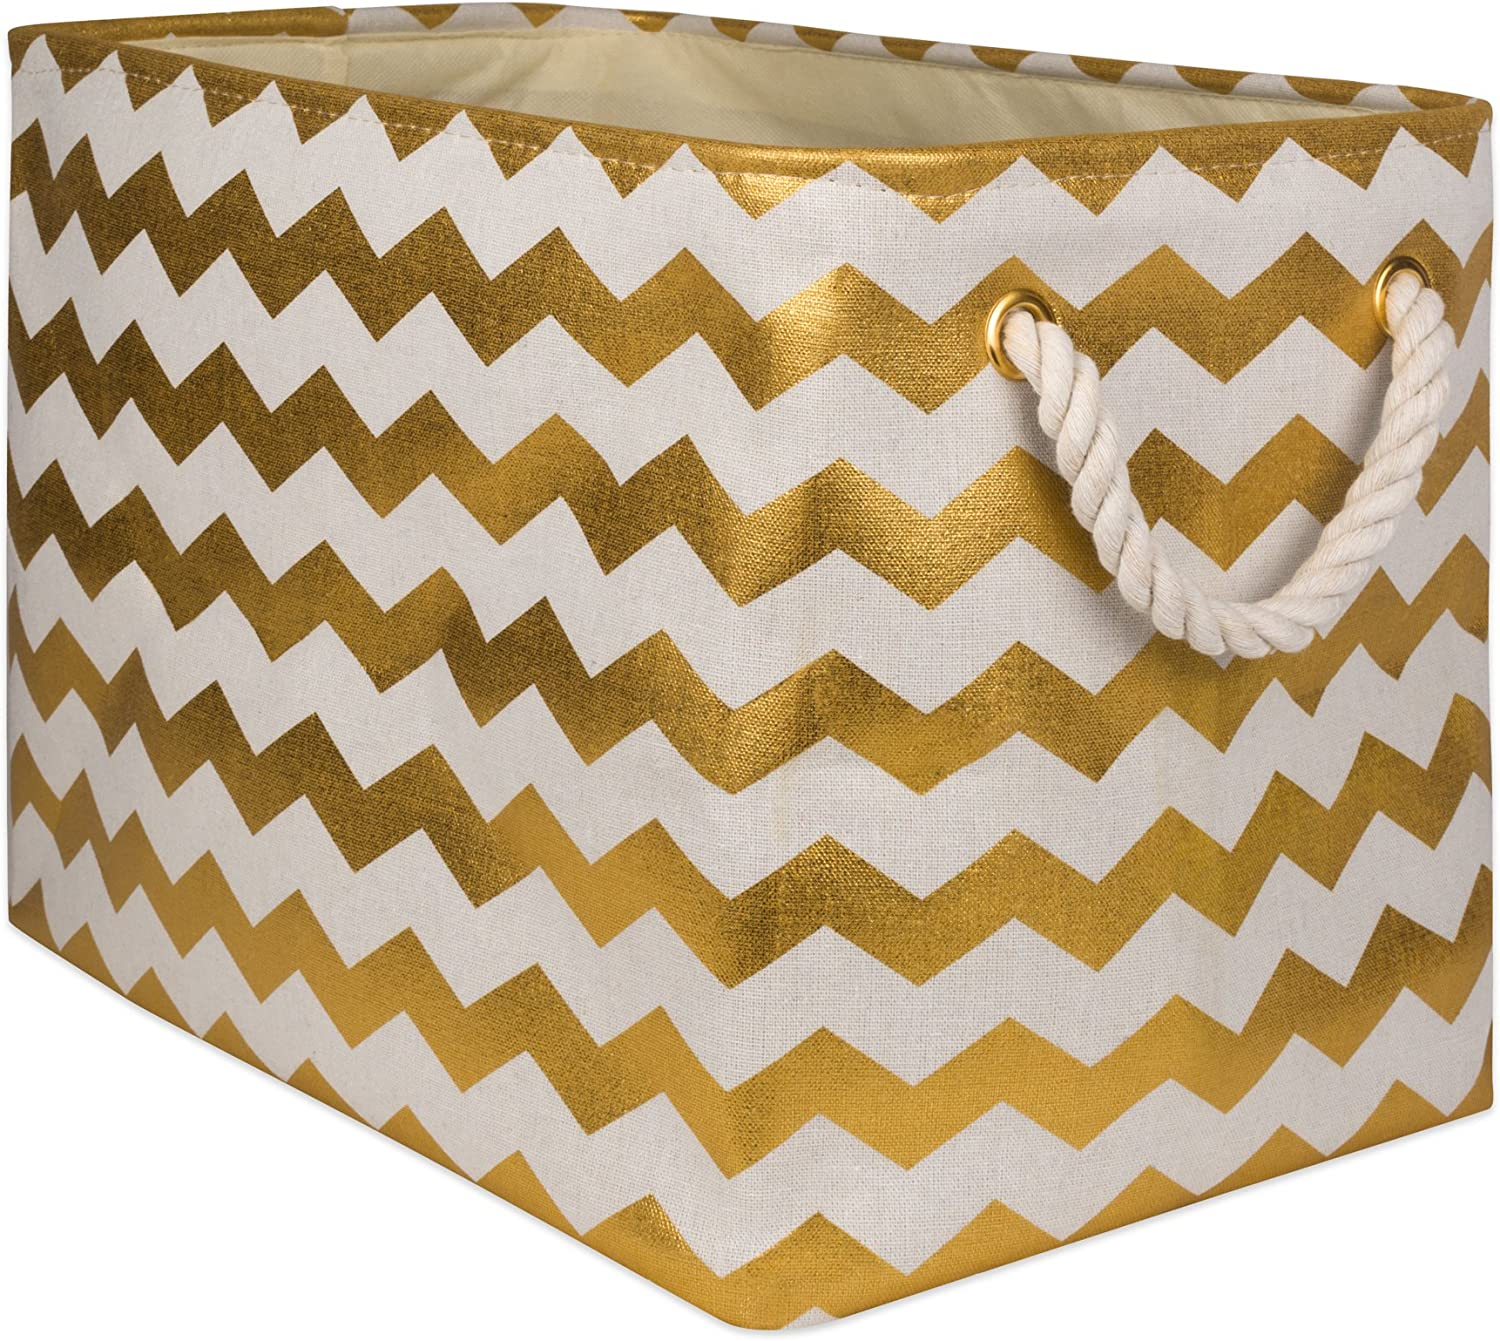 "DII Collapsible Polyester Storage Basket or Bin with Durable Cotton Handles, Home Organizer Solution for Office, Bedroom, Closet, Toys, & Laundry (Medium – 16x10x12""), Gold Chevron"